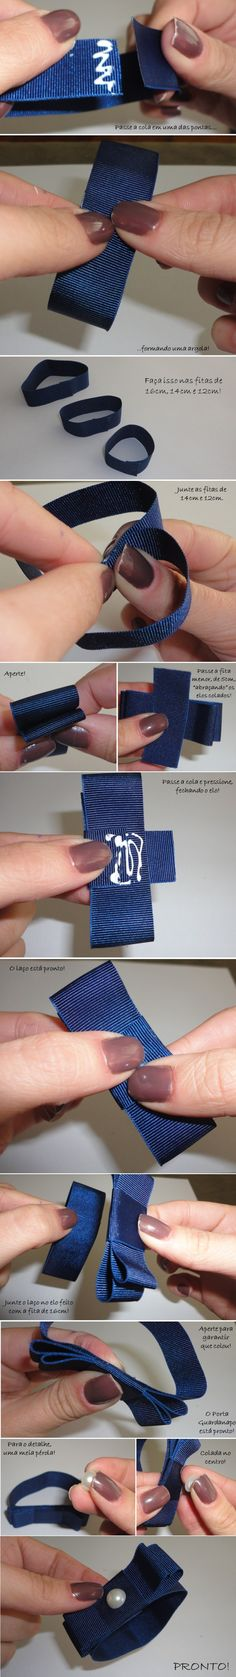 PASSO-A-PASSO-PORTA-GUARDANAPO Mais Napkin Folding, Bridezilla, Blue Christmas, Diy Crafts To Sell, Diy Beauty, Napkin Rings, Tablescapes, Napkins, Bows